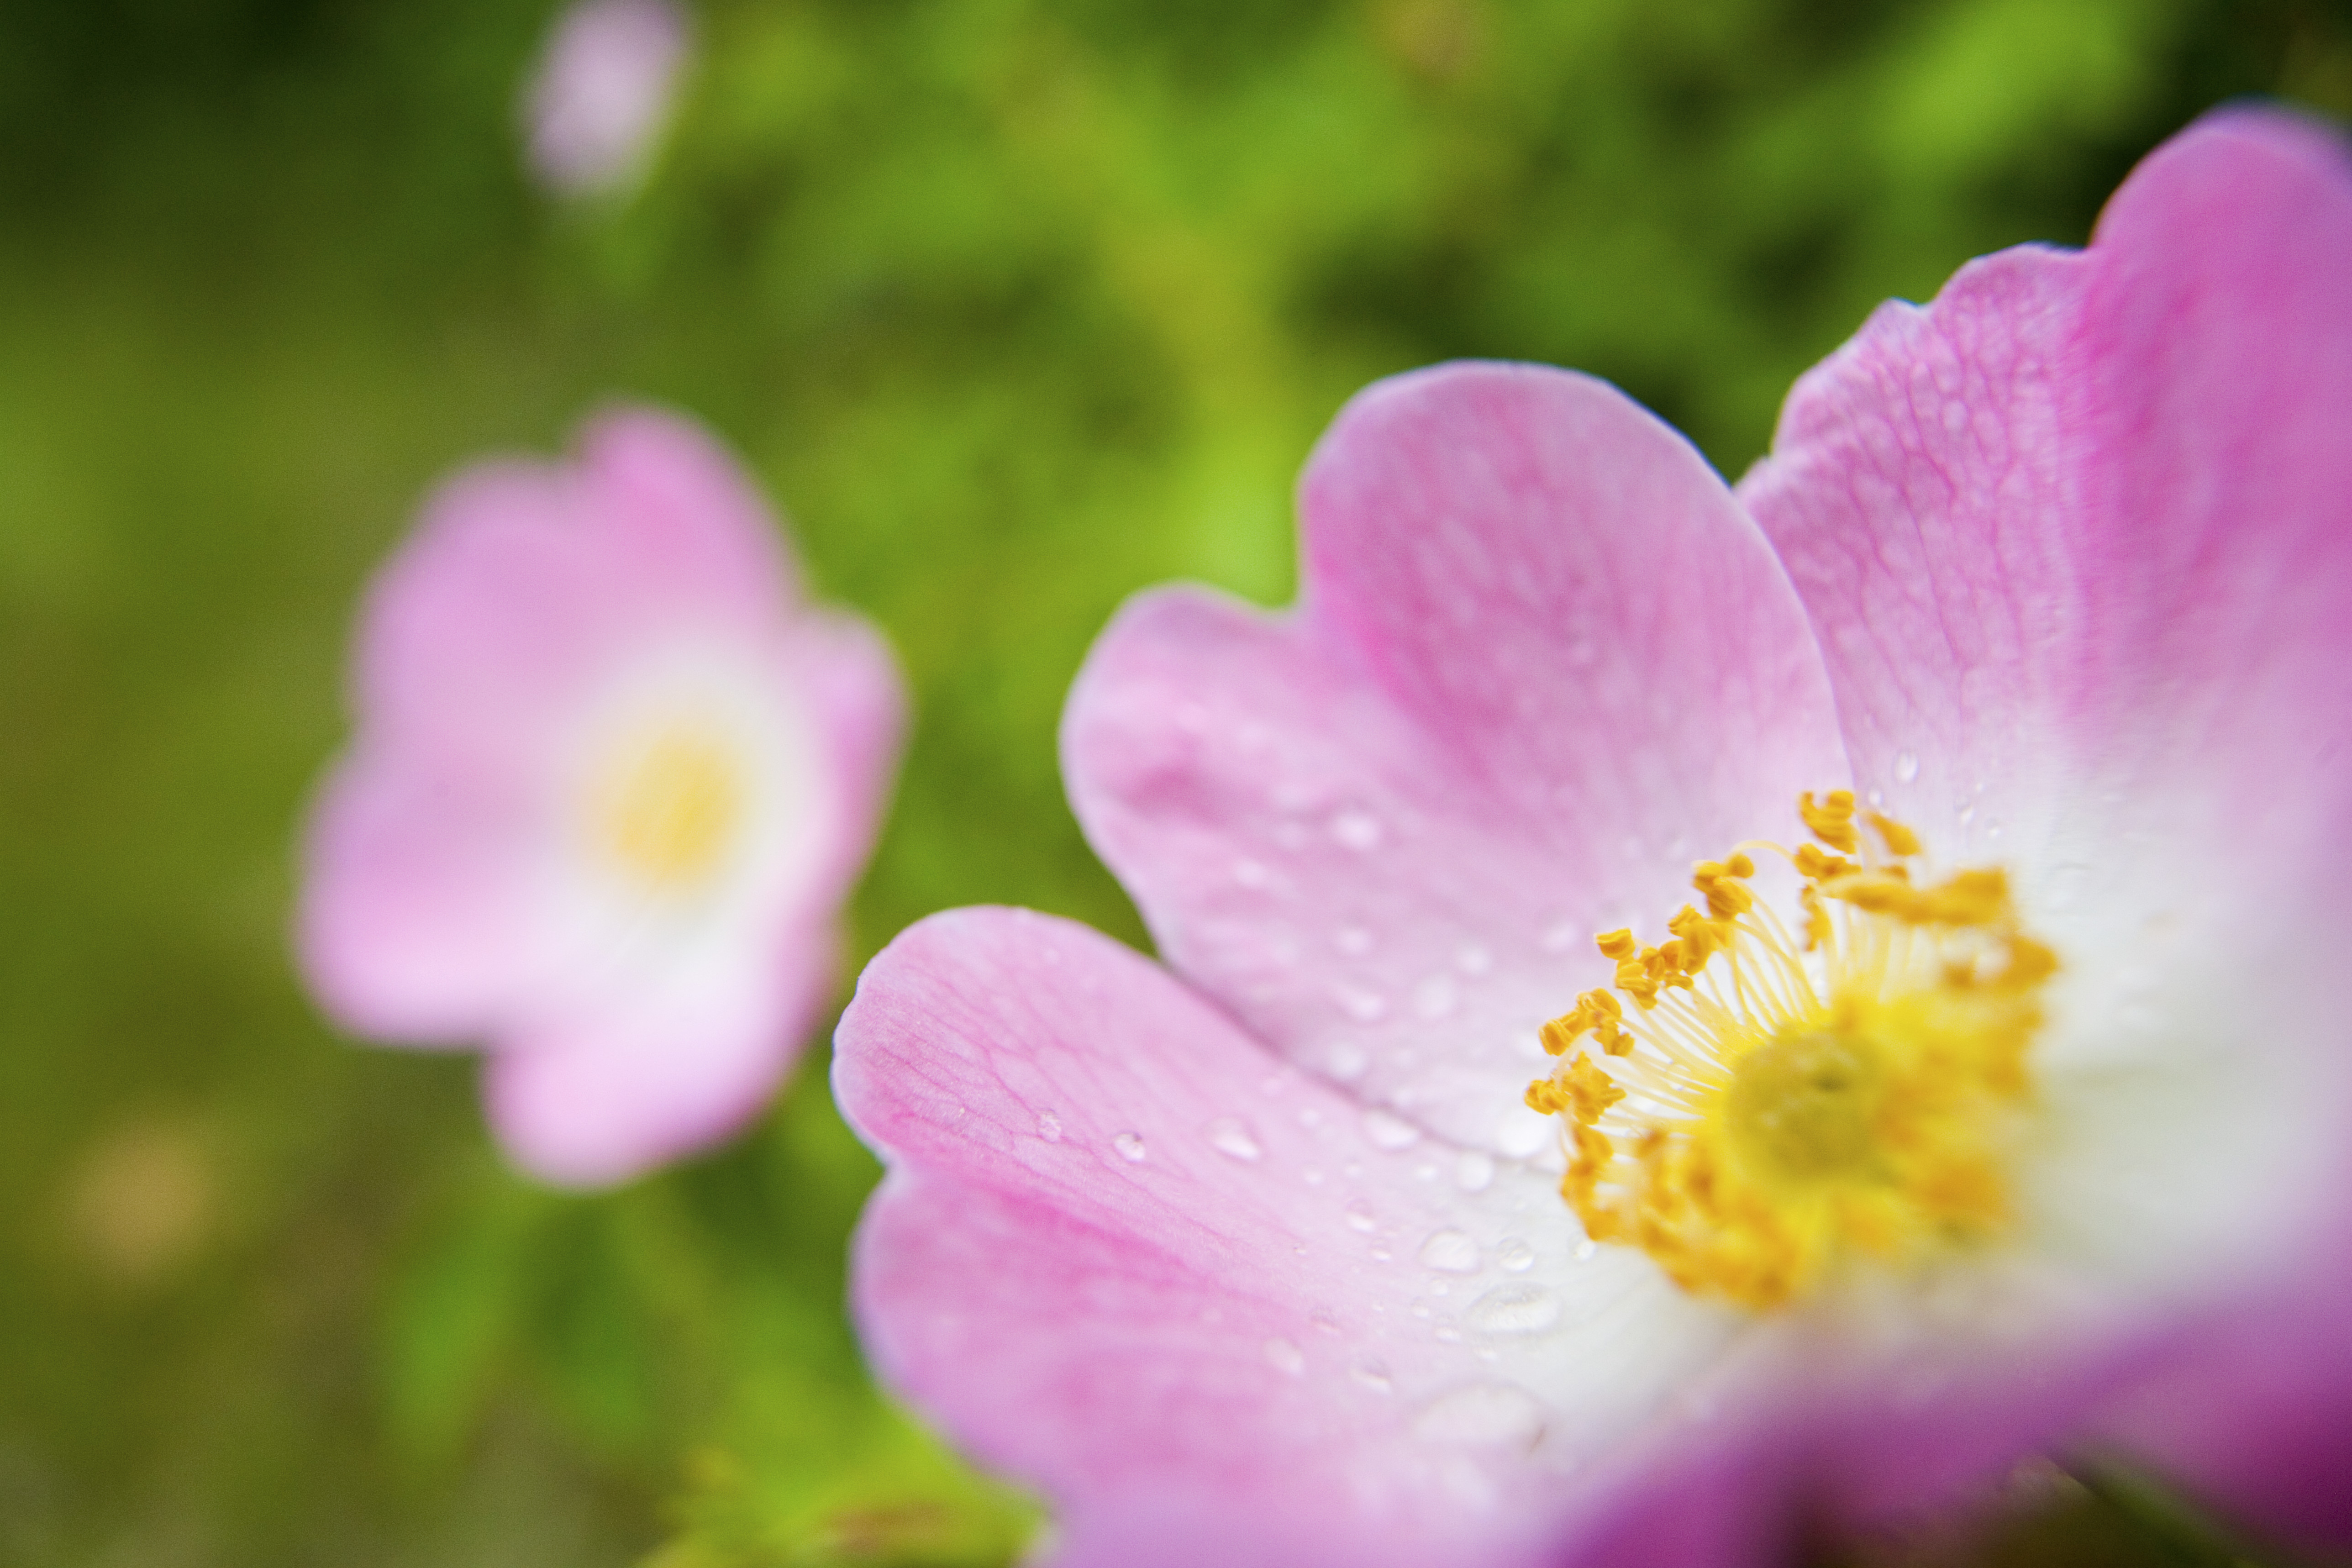 water-drops-on-pink-wild-rose - Iowa Pictures - Iowa ...